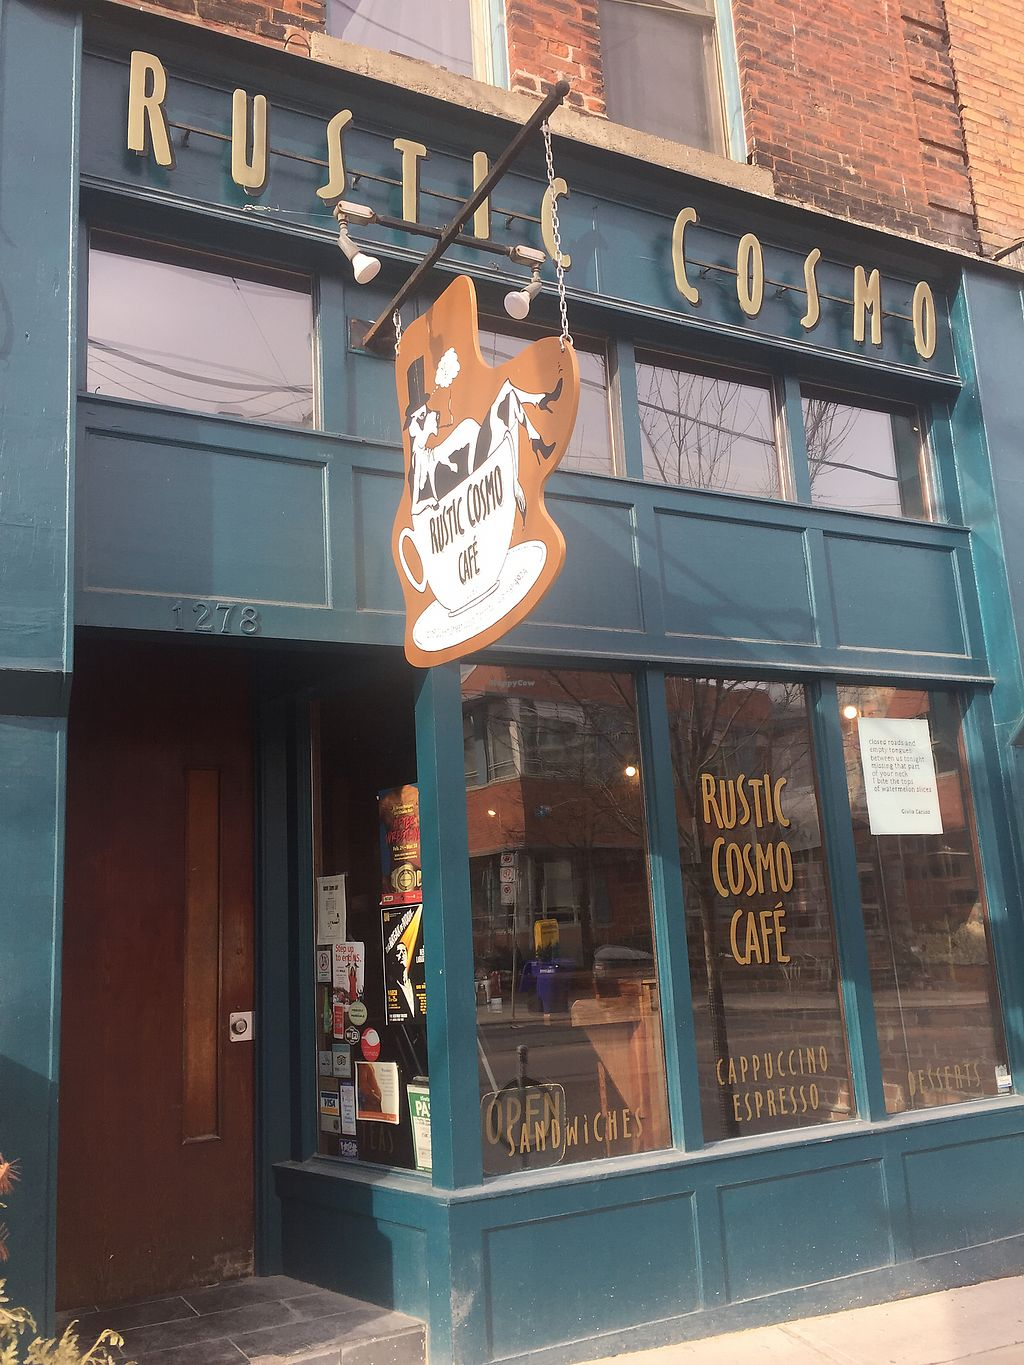 """Photo of Rustic Cosmo Cafe  by <a href=""""/members/profile/Gracem"""">Gracem</a> <br/>Store front <br/> March 9, 2018  - <a href='/contact/abuse/image/113853/368617'>Report</a>"""